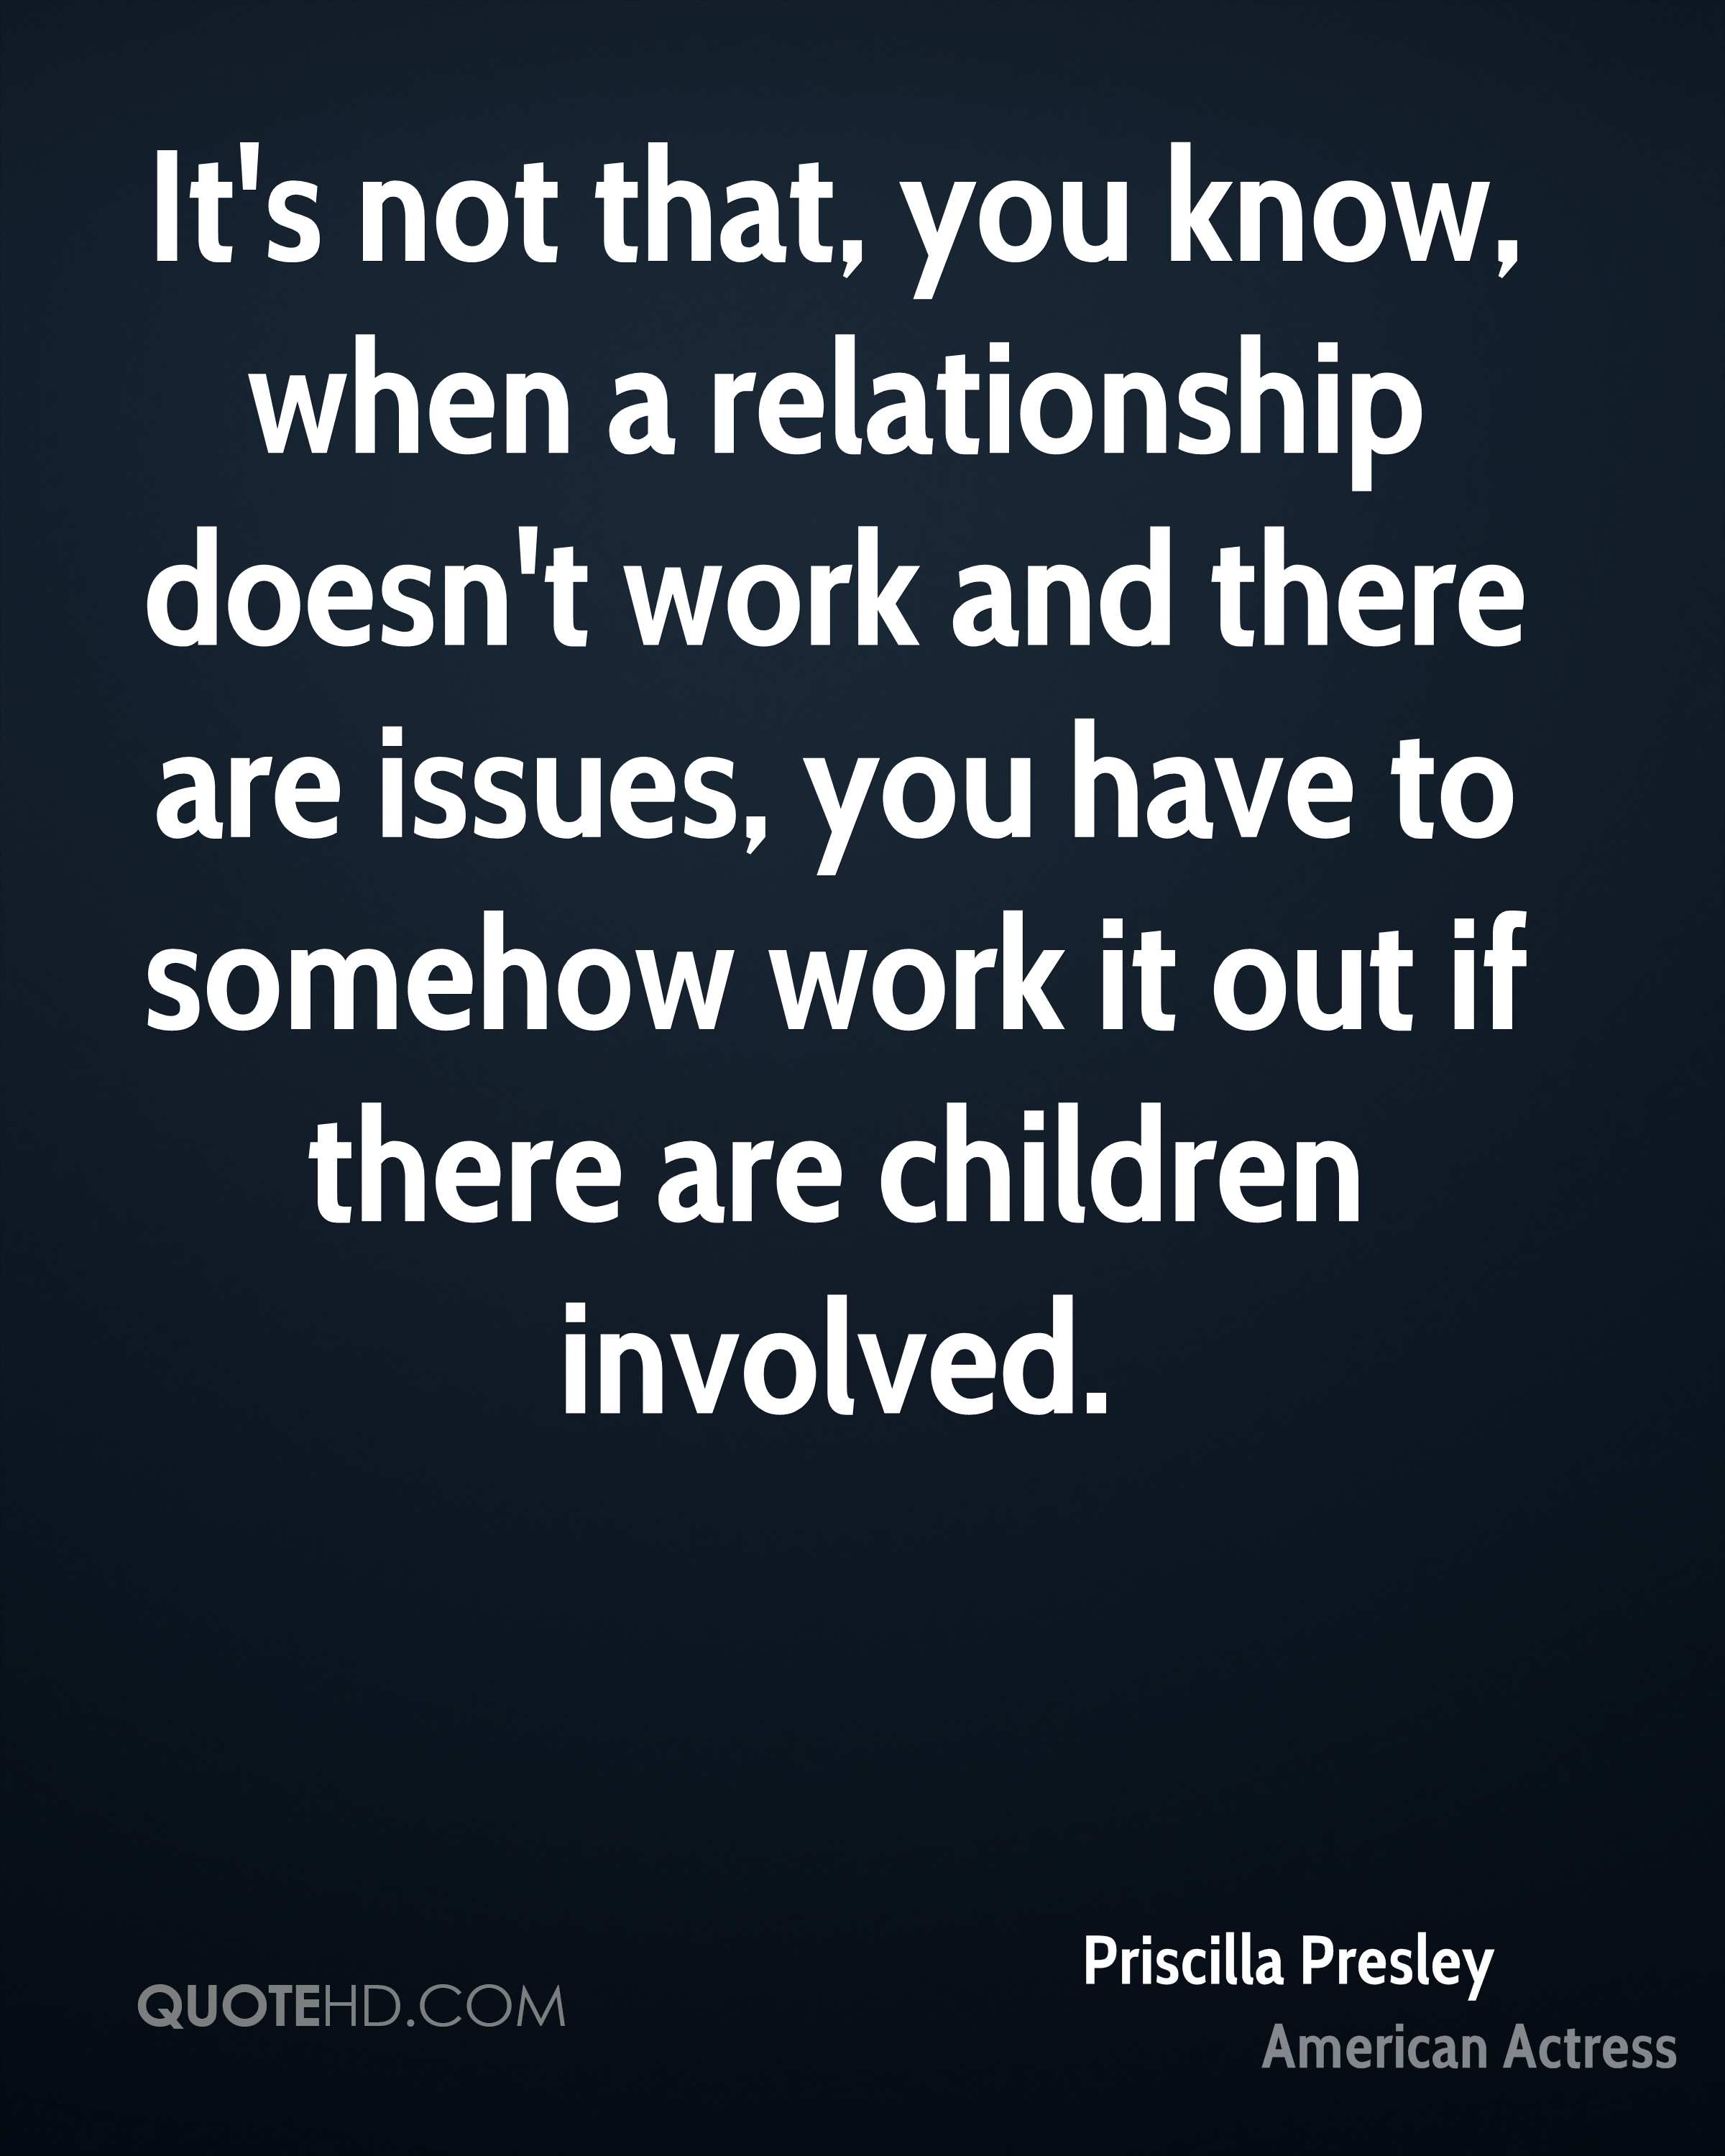 It's not that, you know, when a relationship doesn't work and there are issues, you have to somehow work it out if there are children involved.